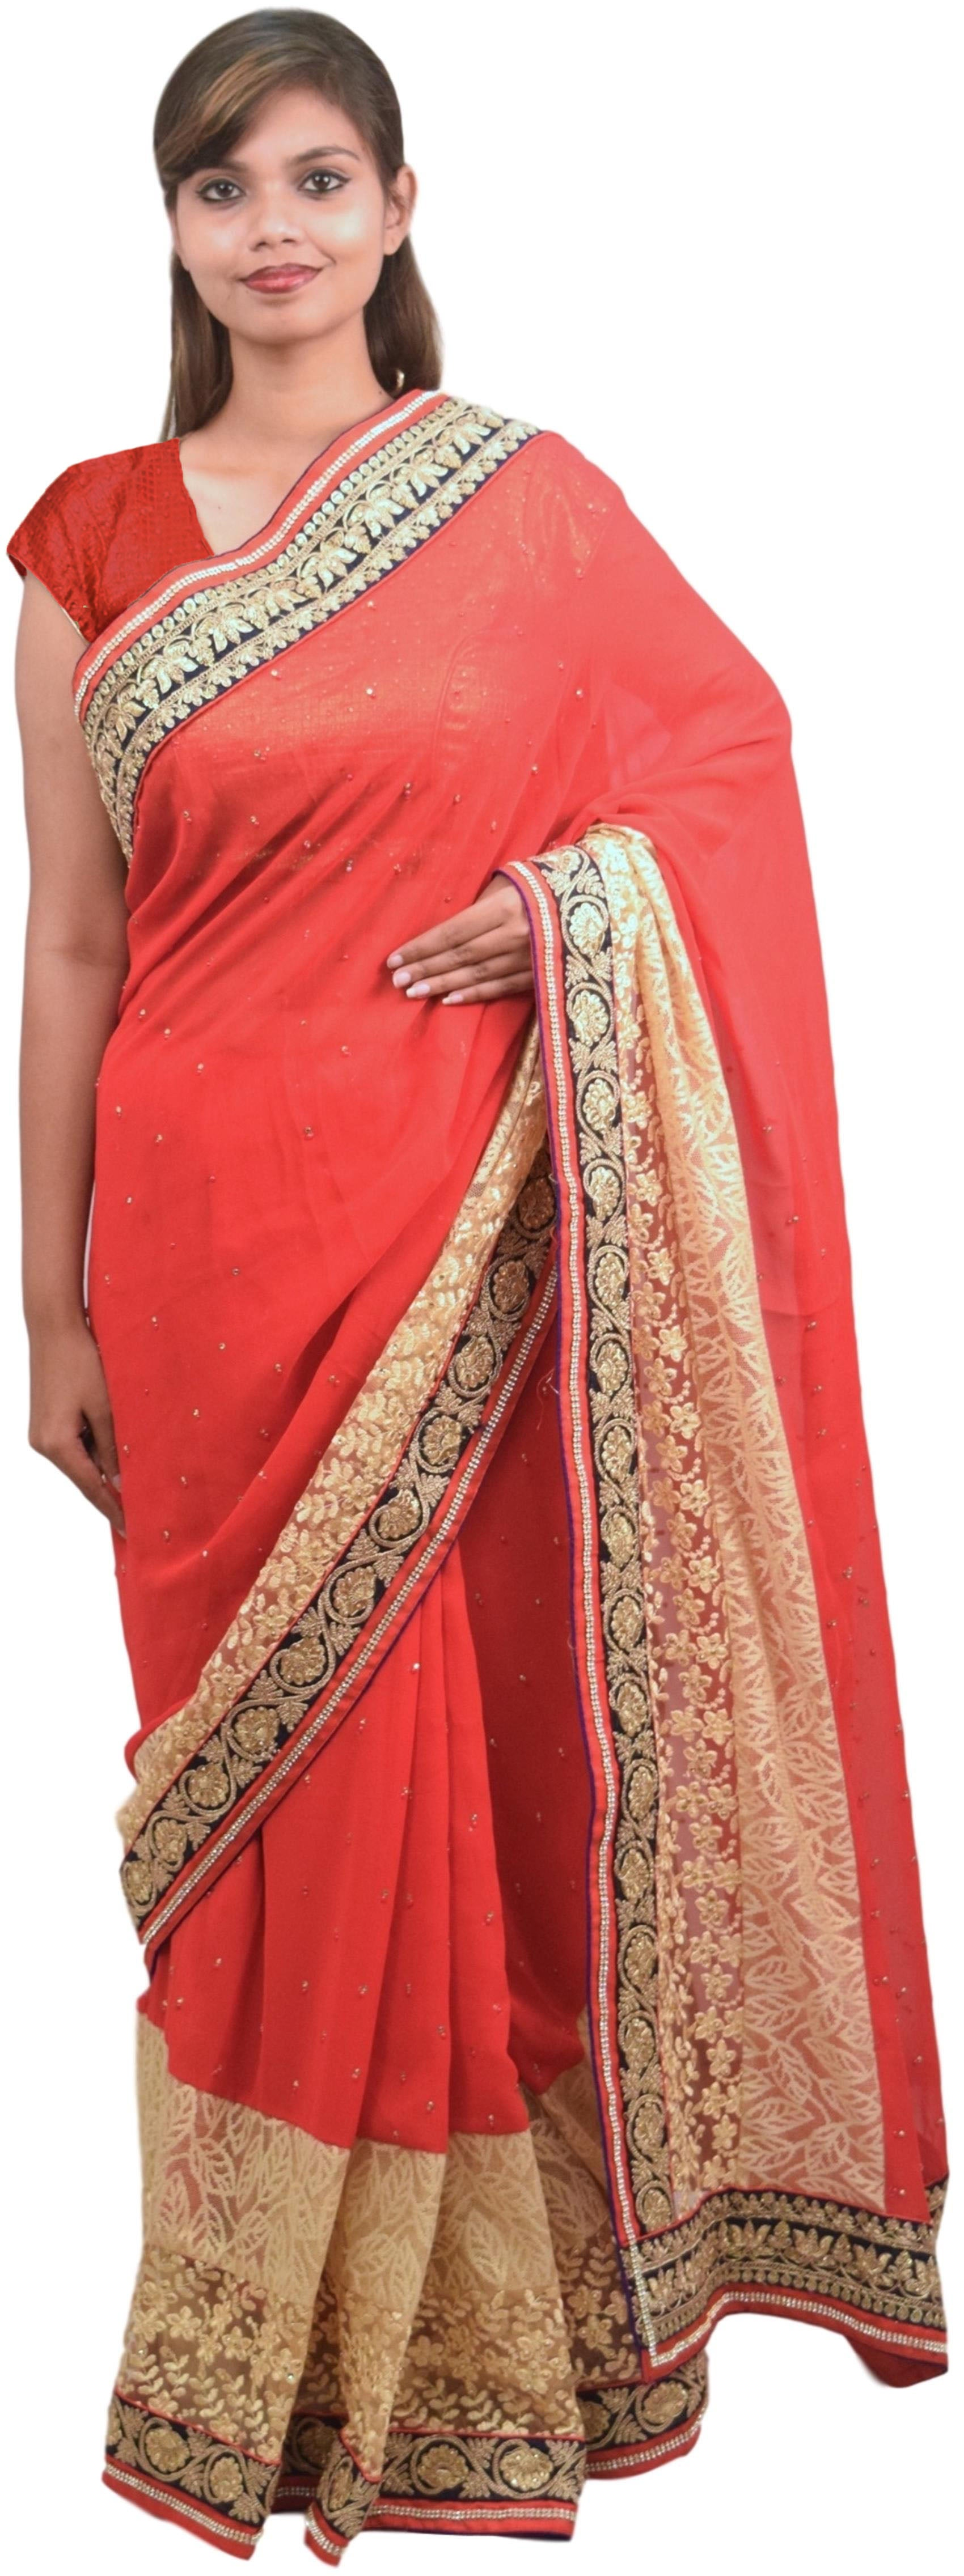 Red & Beige Designer PartyWear Georgette & Net Thread Zari Stone Work Wedding Saree Sari